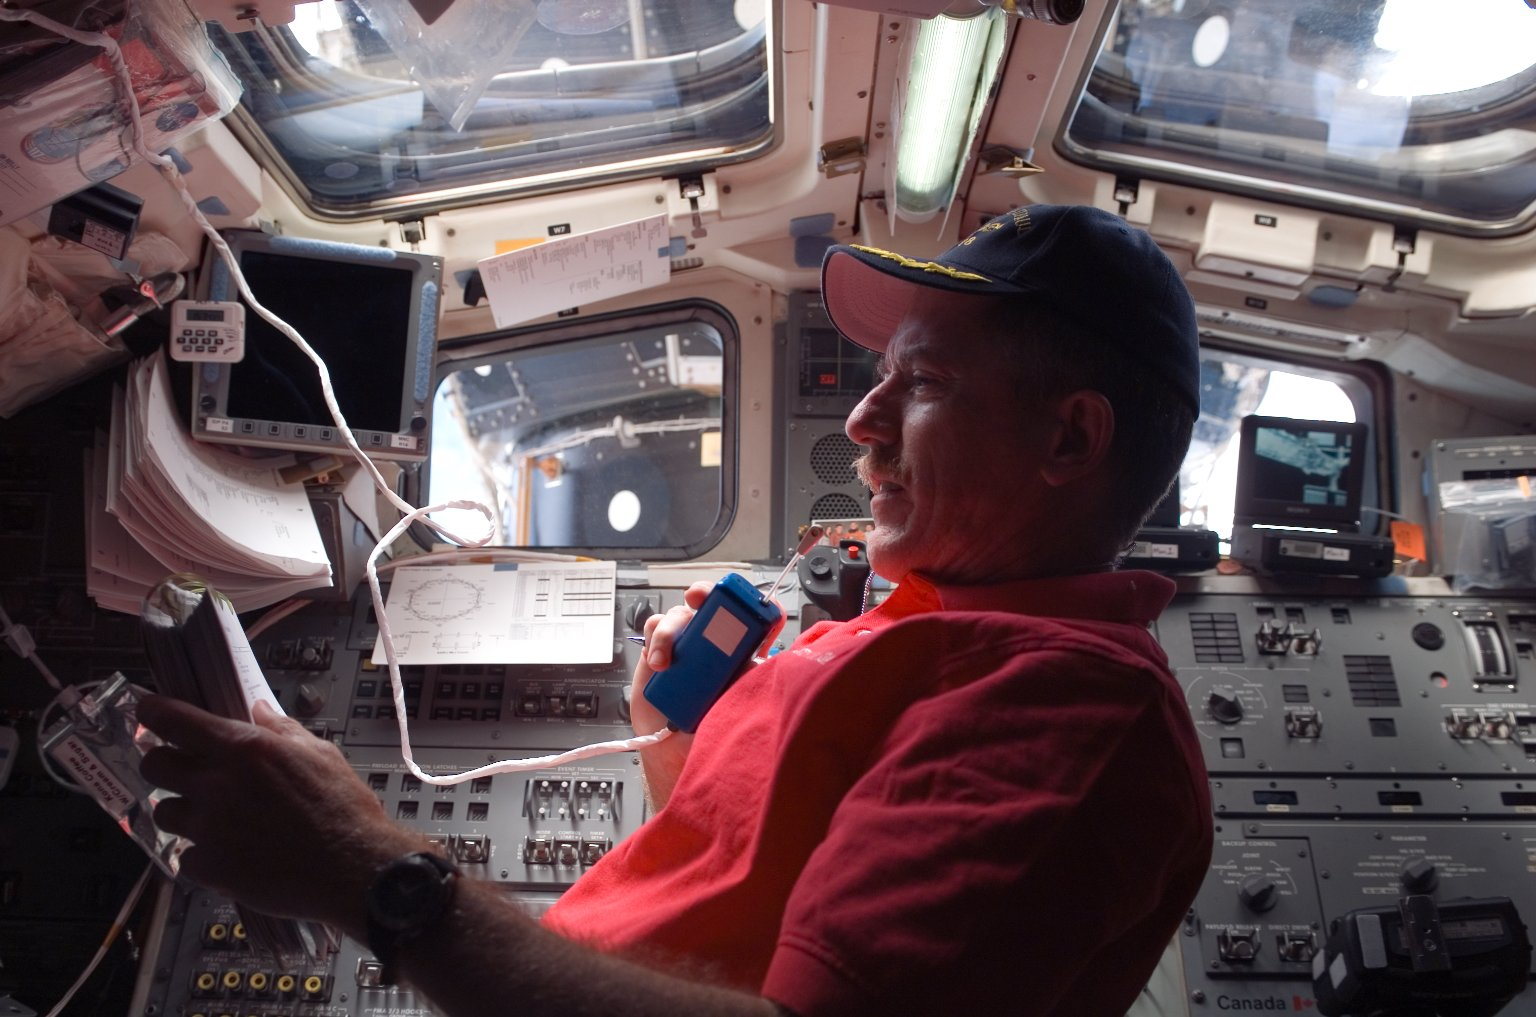 Reilly uses communication equipment in the aft FD during EVA 4